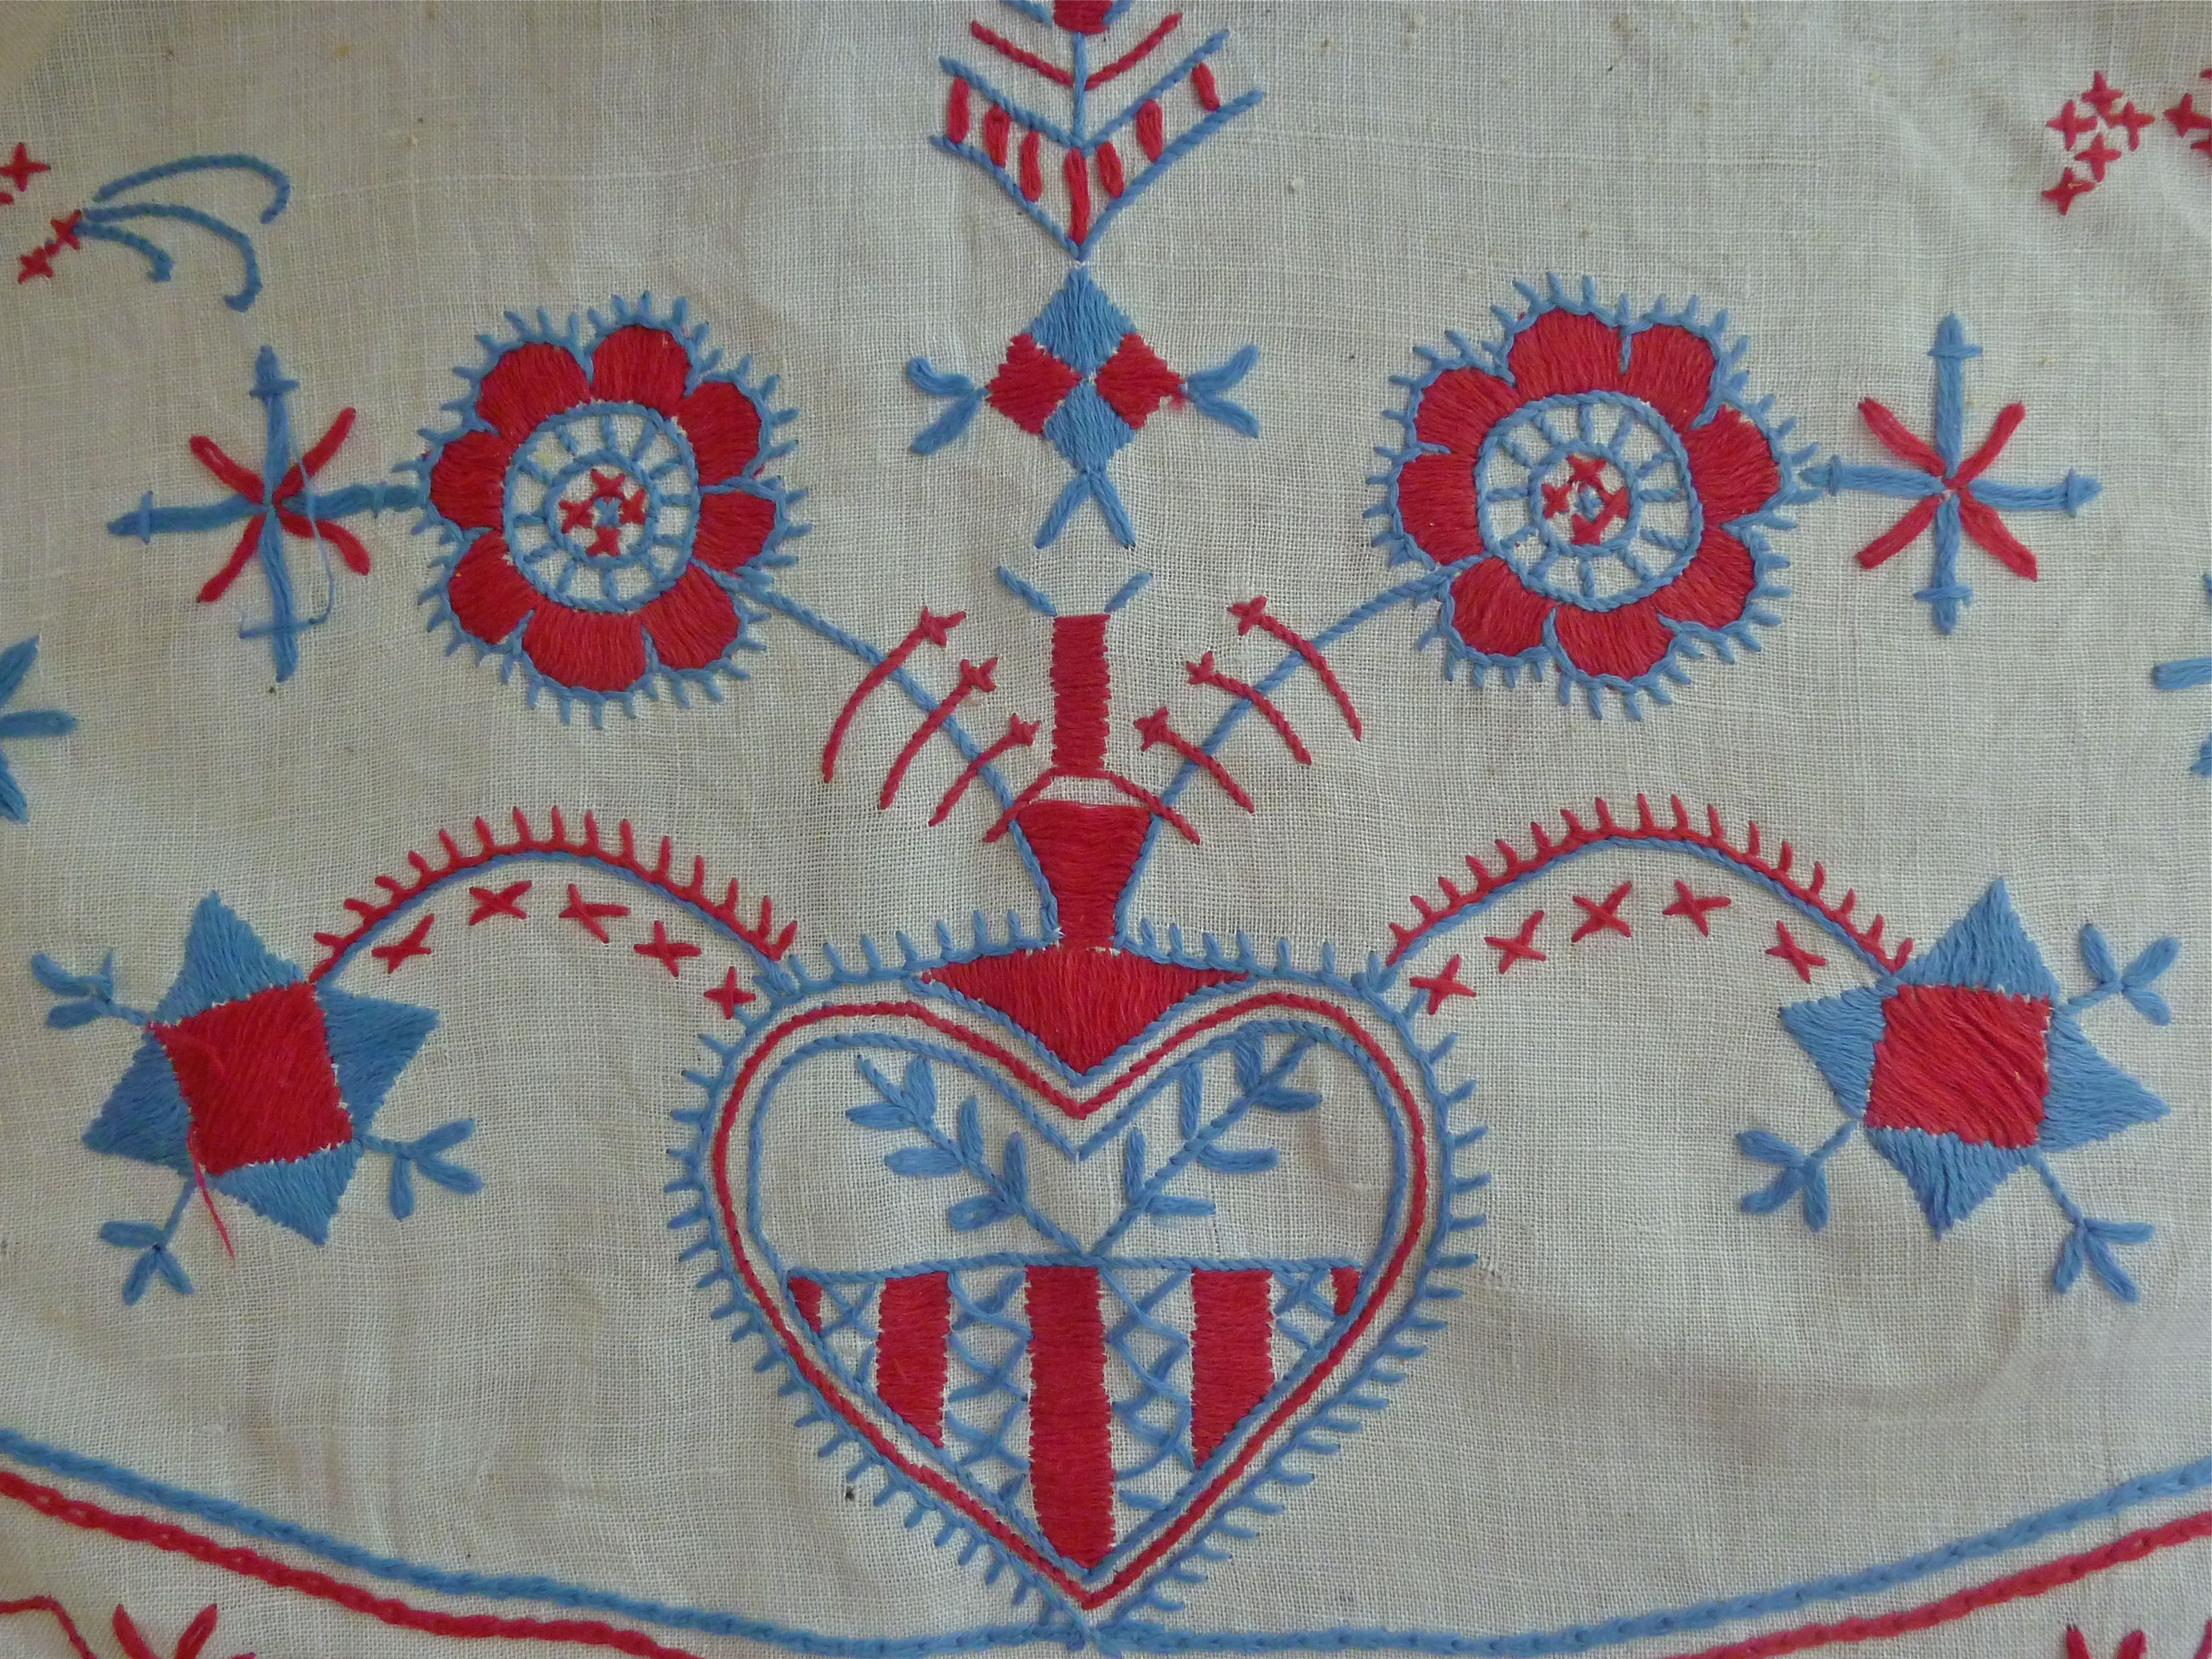 Swedish Tablecloth Scandinavian Embroidery Swedish Embroidery Scandinavian Folk Art